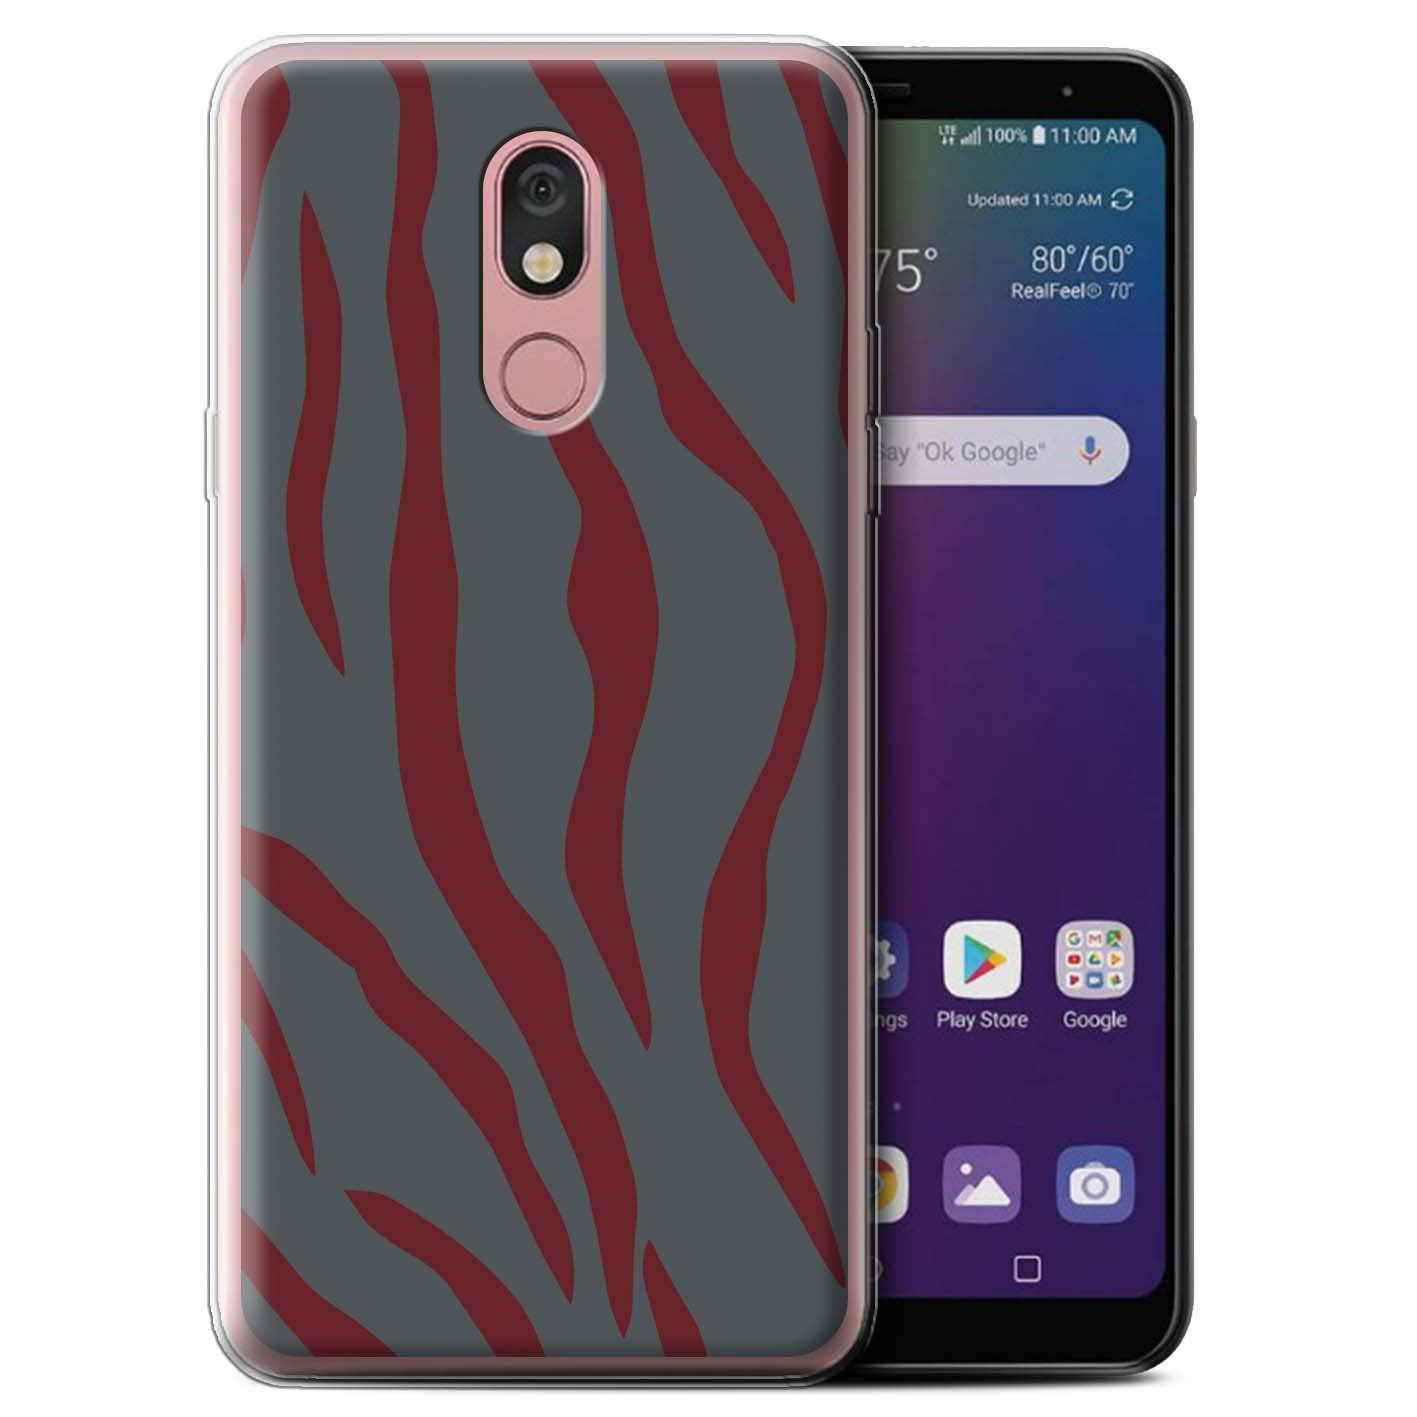 eSwish Gel TPU Phone Case/Cover for LG Stylo 5 / Red Tiger Gamer Design/Military Camo Camouflage Collection